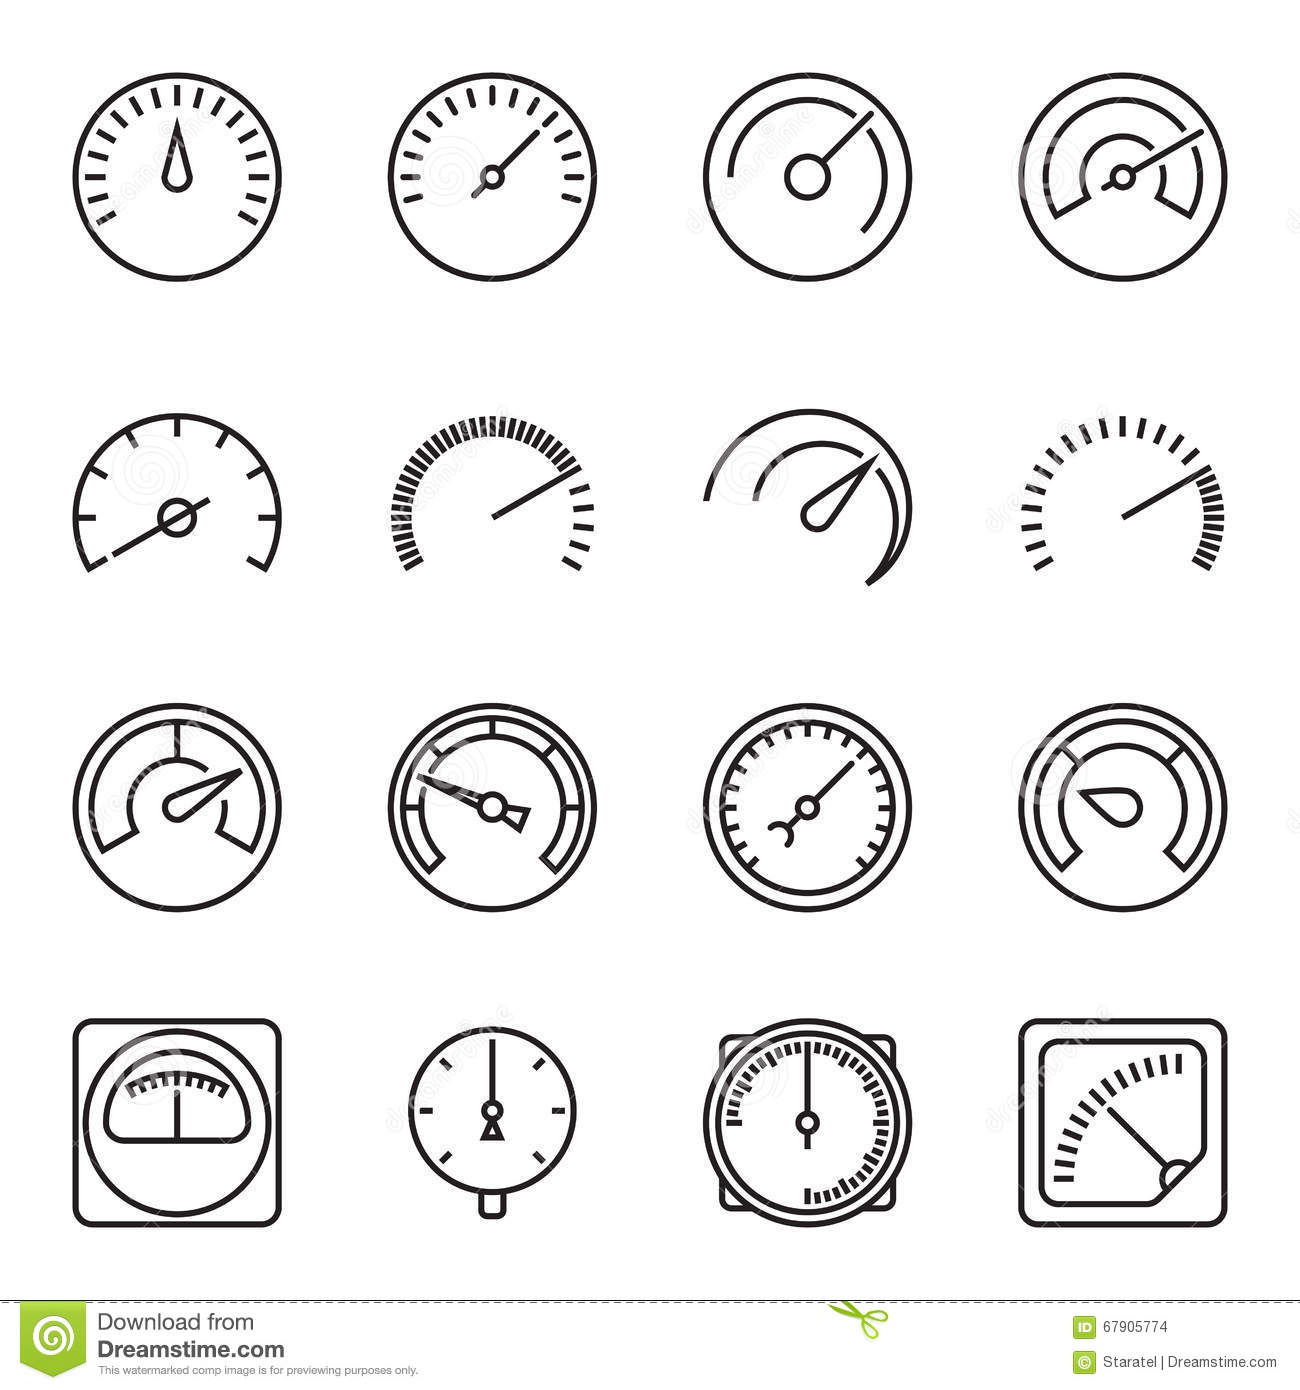 Meter Icons Symbols Of Speedometers Manometers